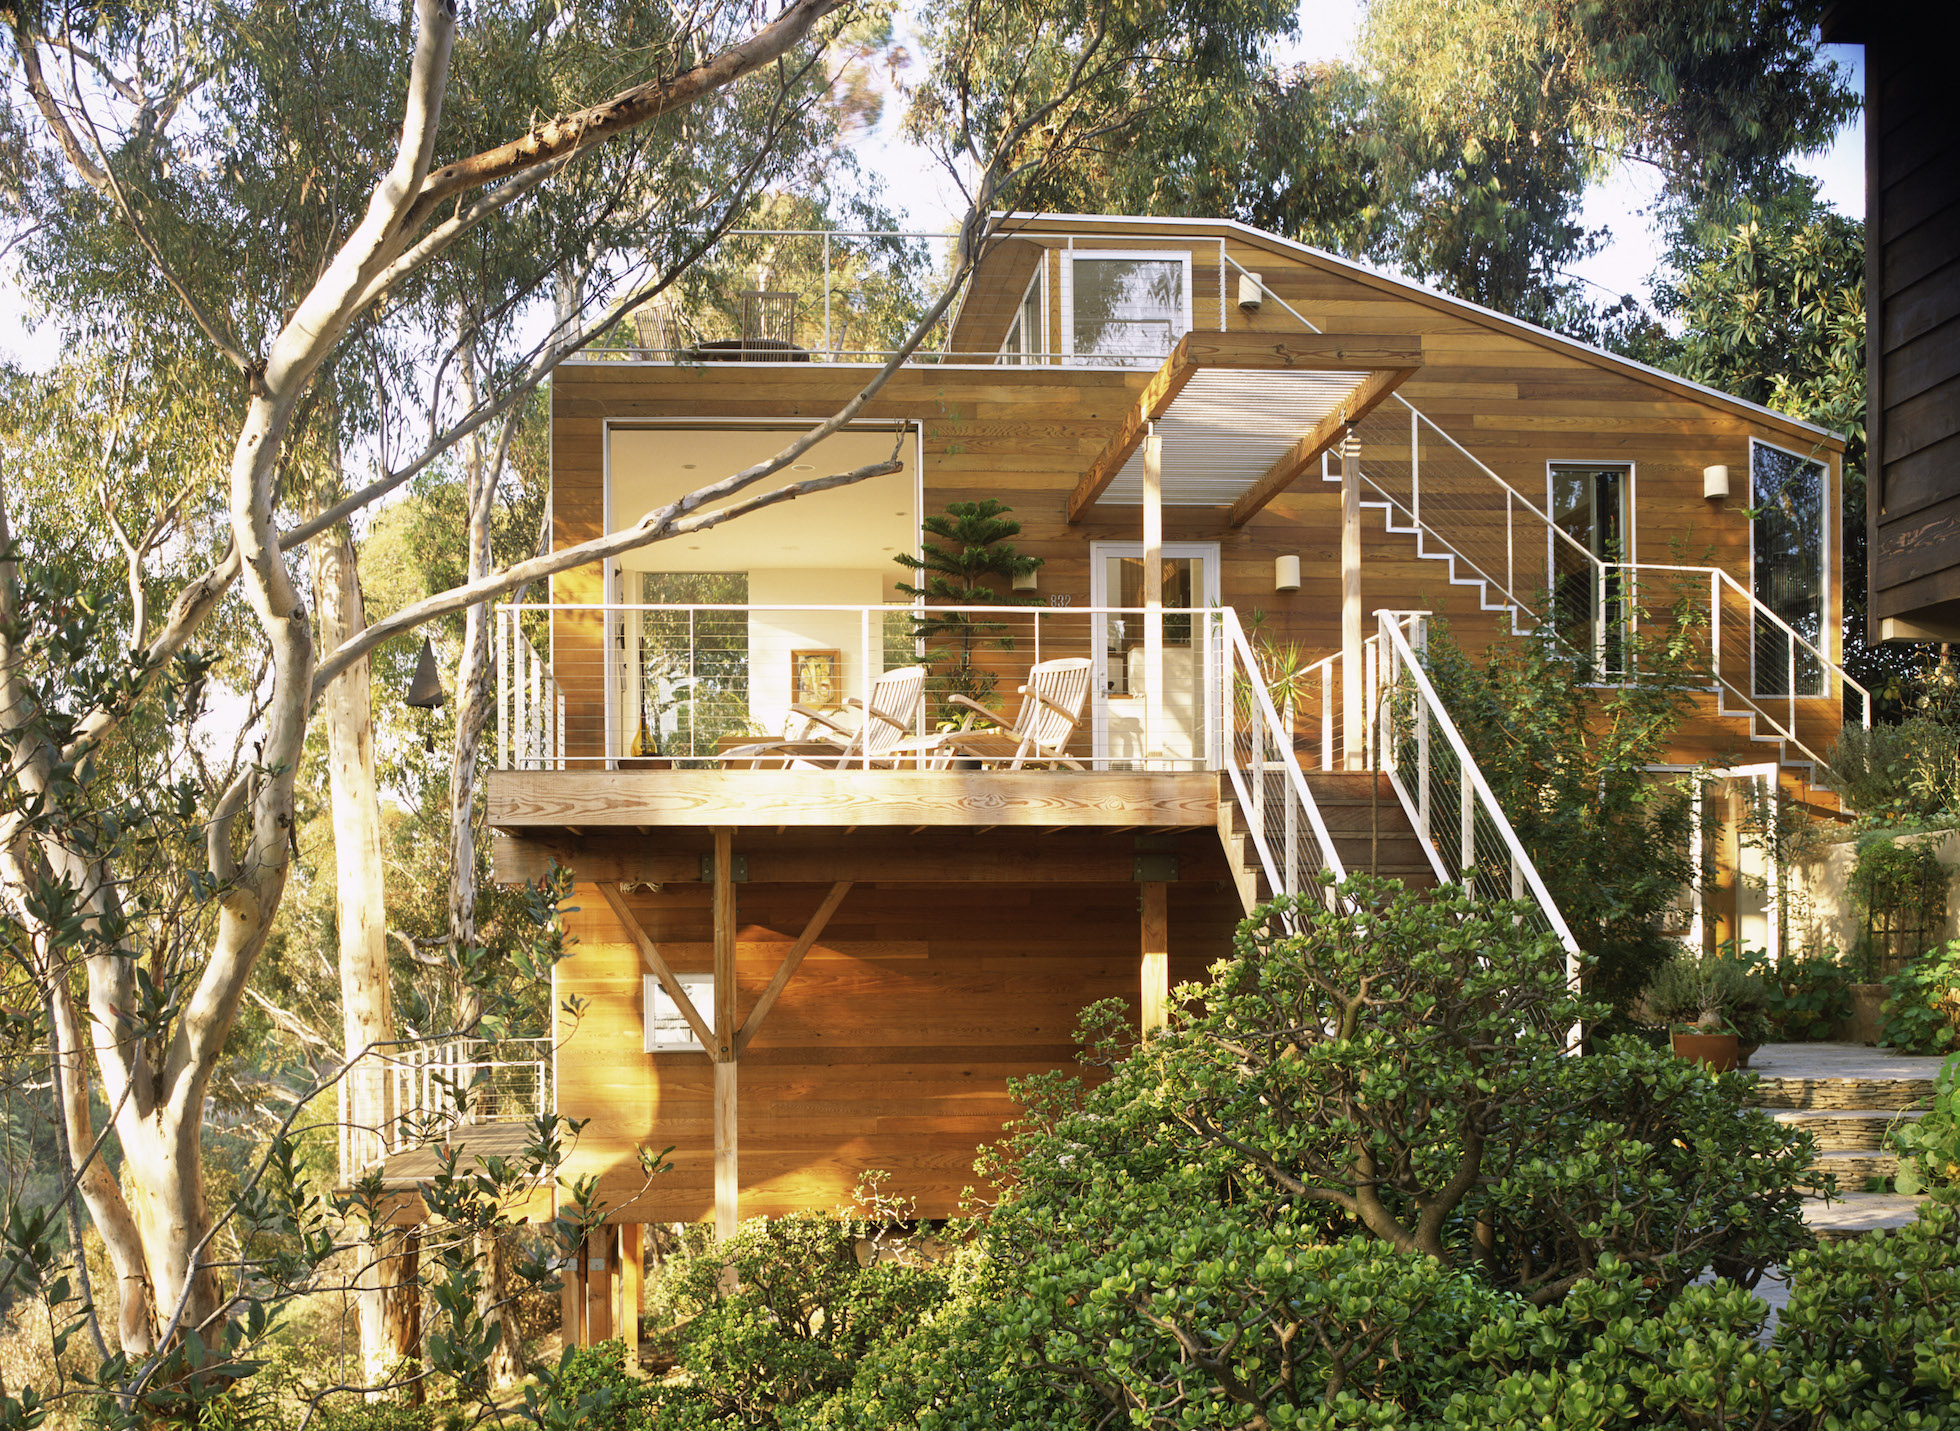 50 dream homes in the woods pictures of beautiful woodsy